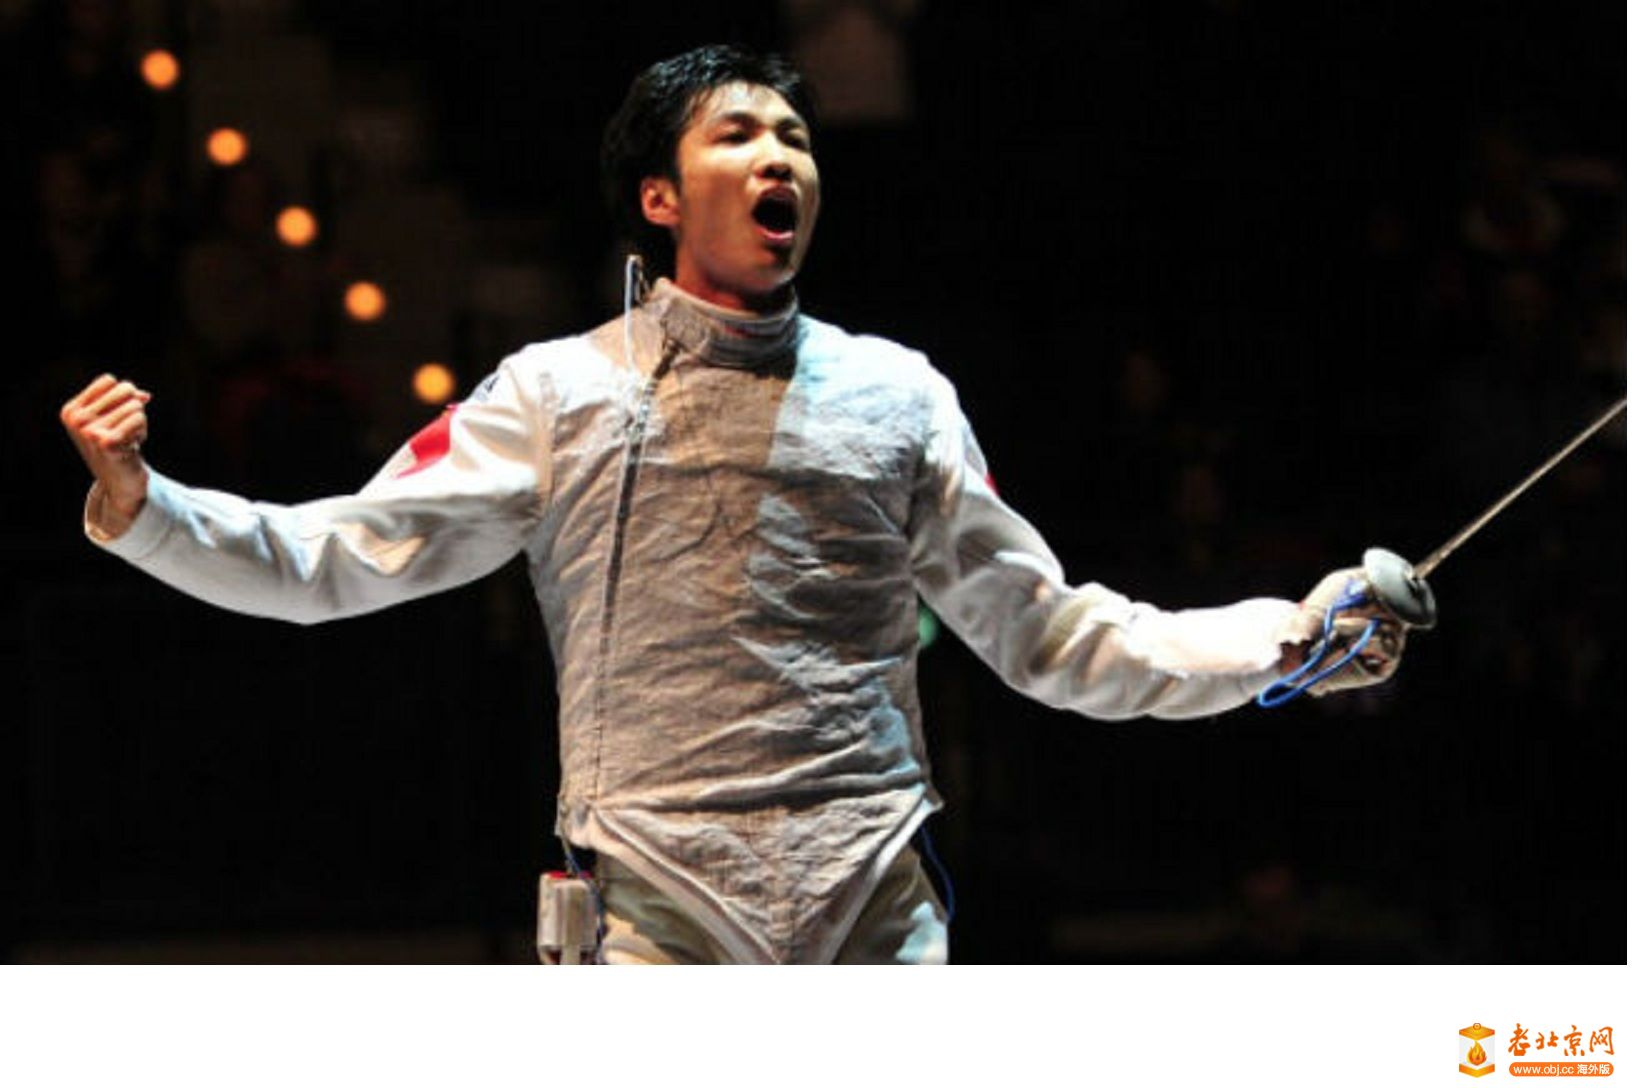 Chinese fencer Lei Sheng, who.will carry the country's national flag at the ...